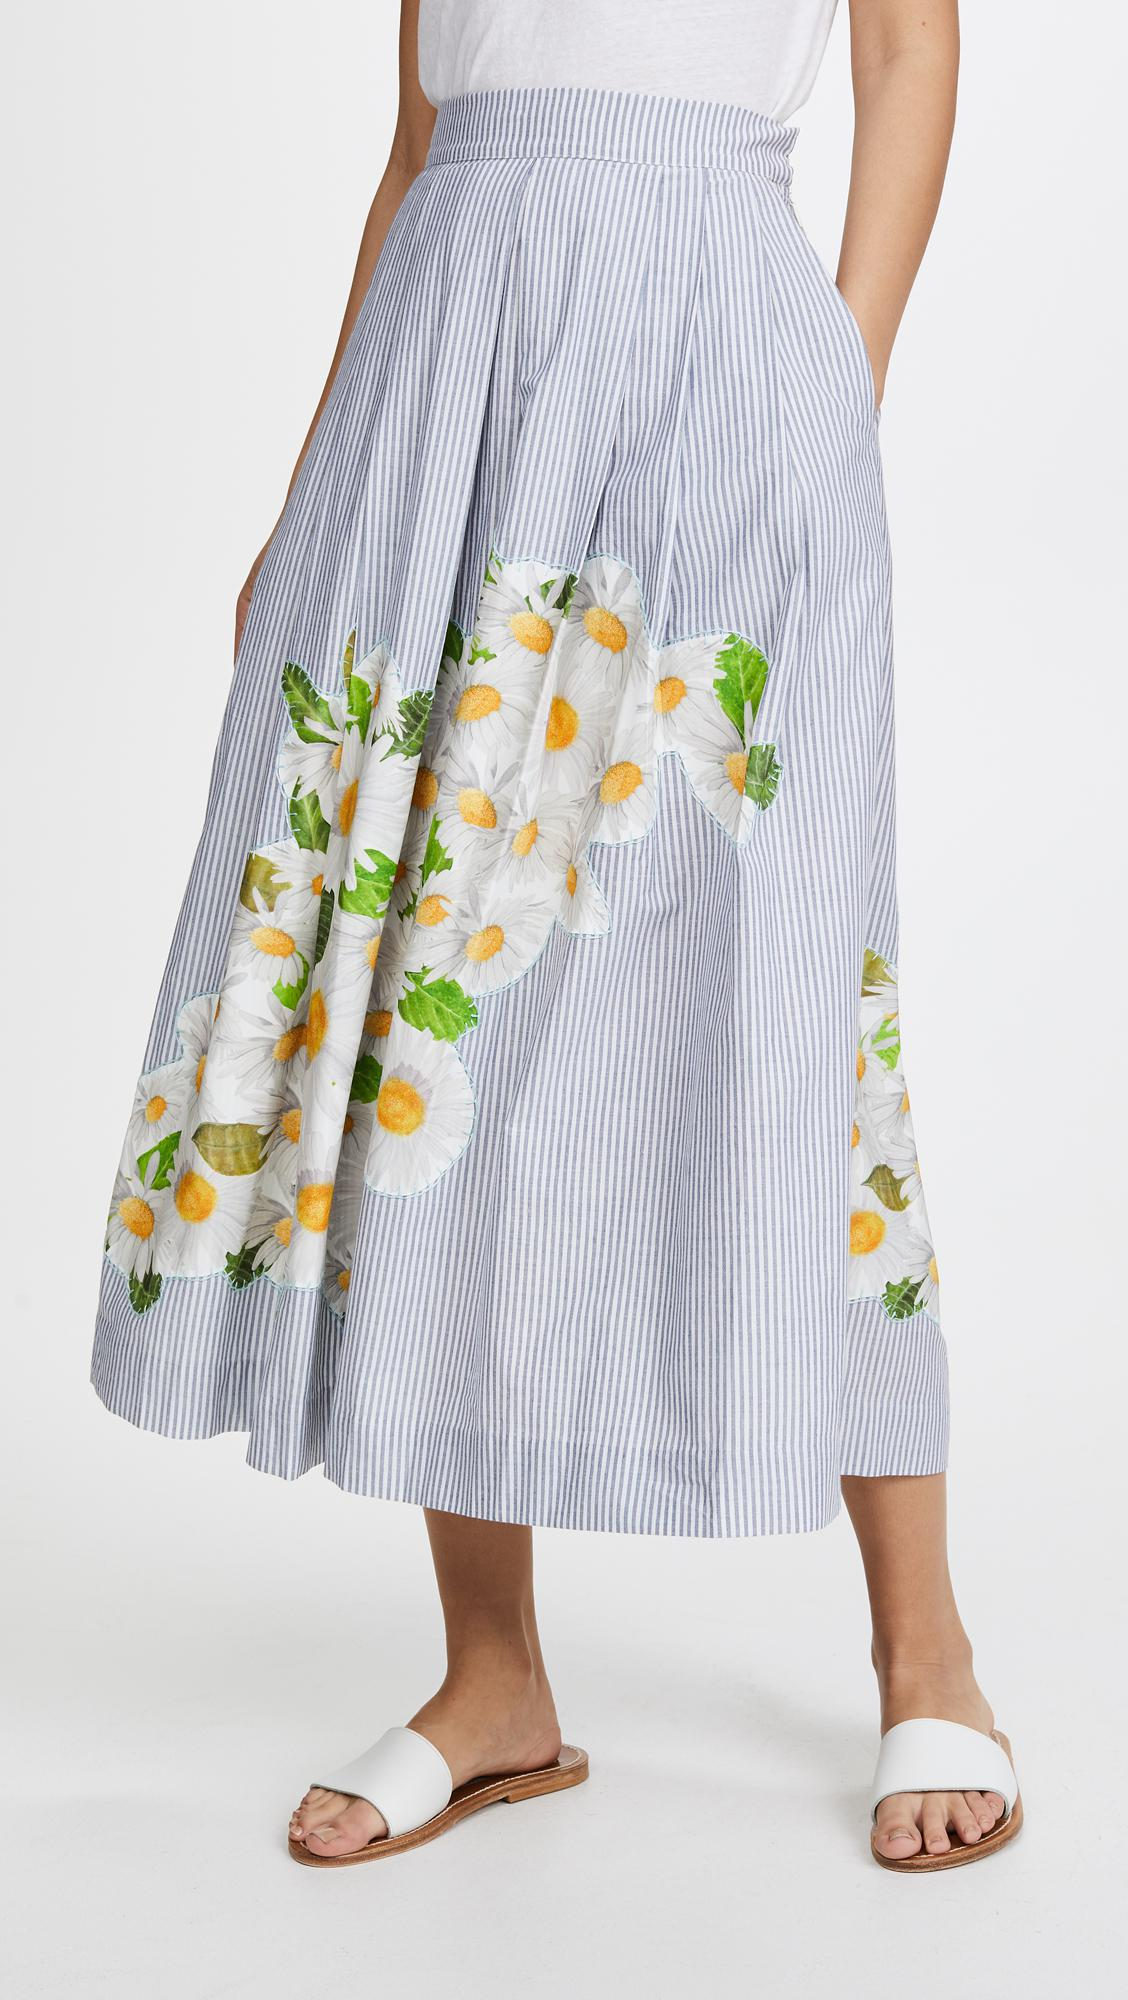 Blue Isolda Embroidered Lyst Rio In Skirt VLSGzpqMU